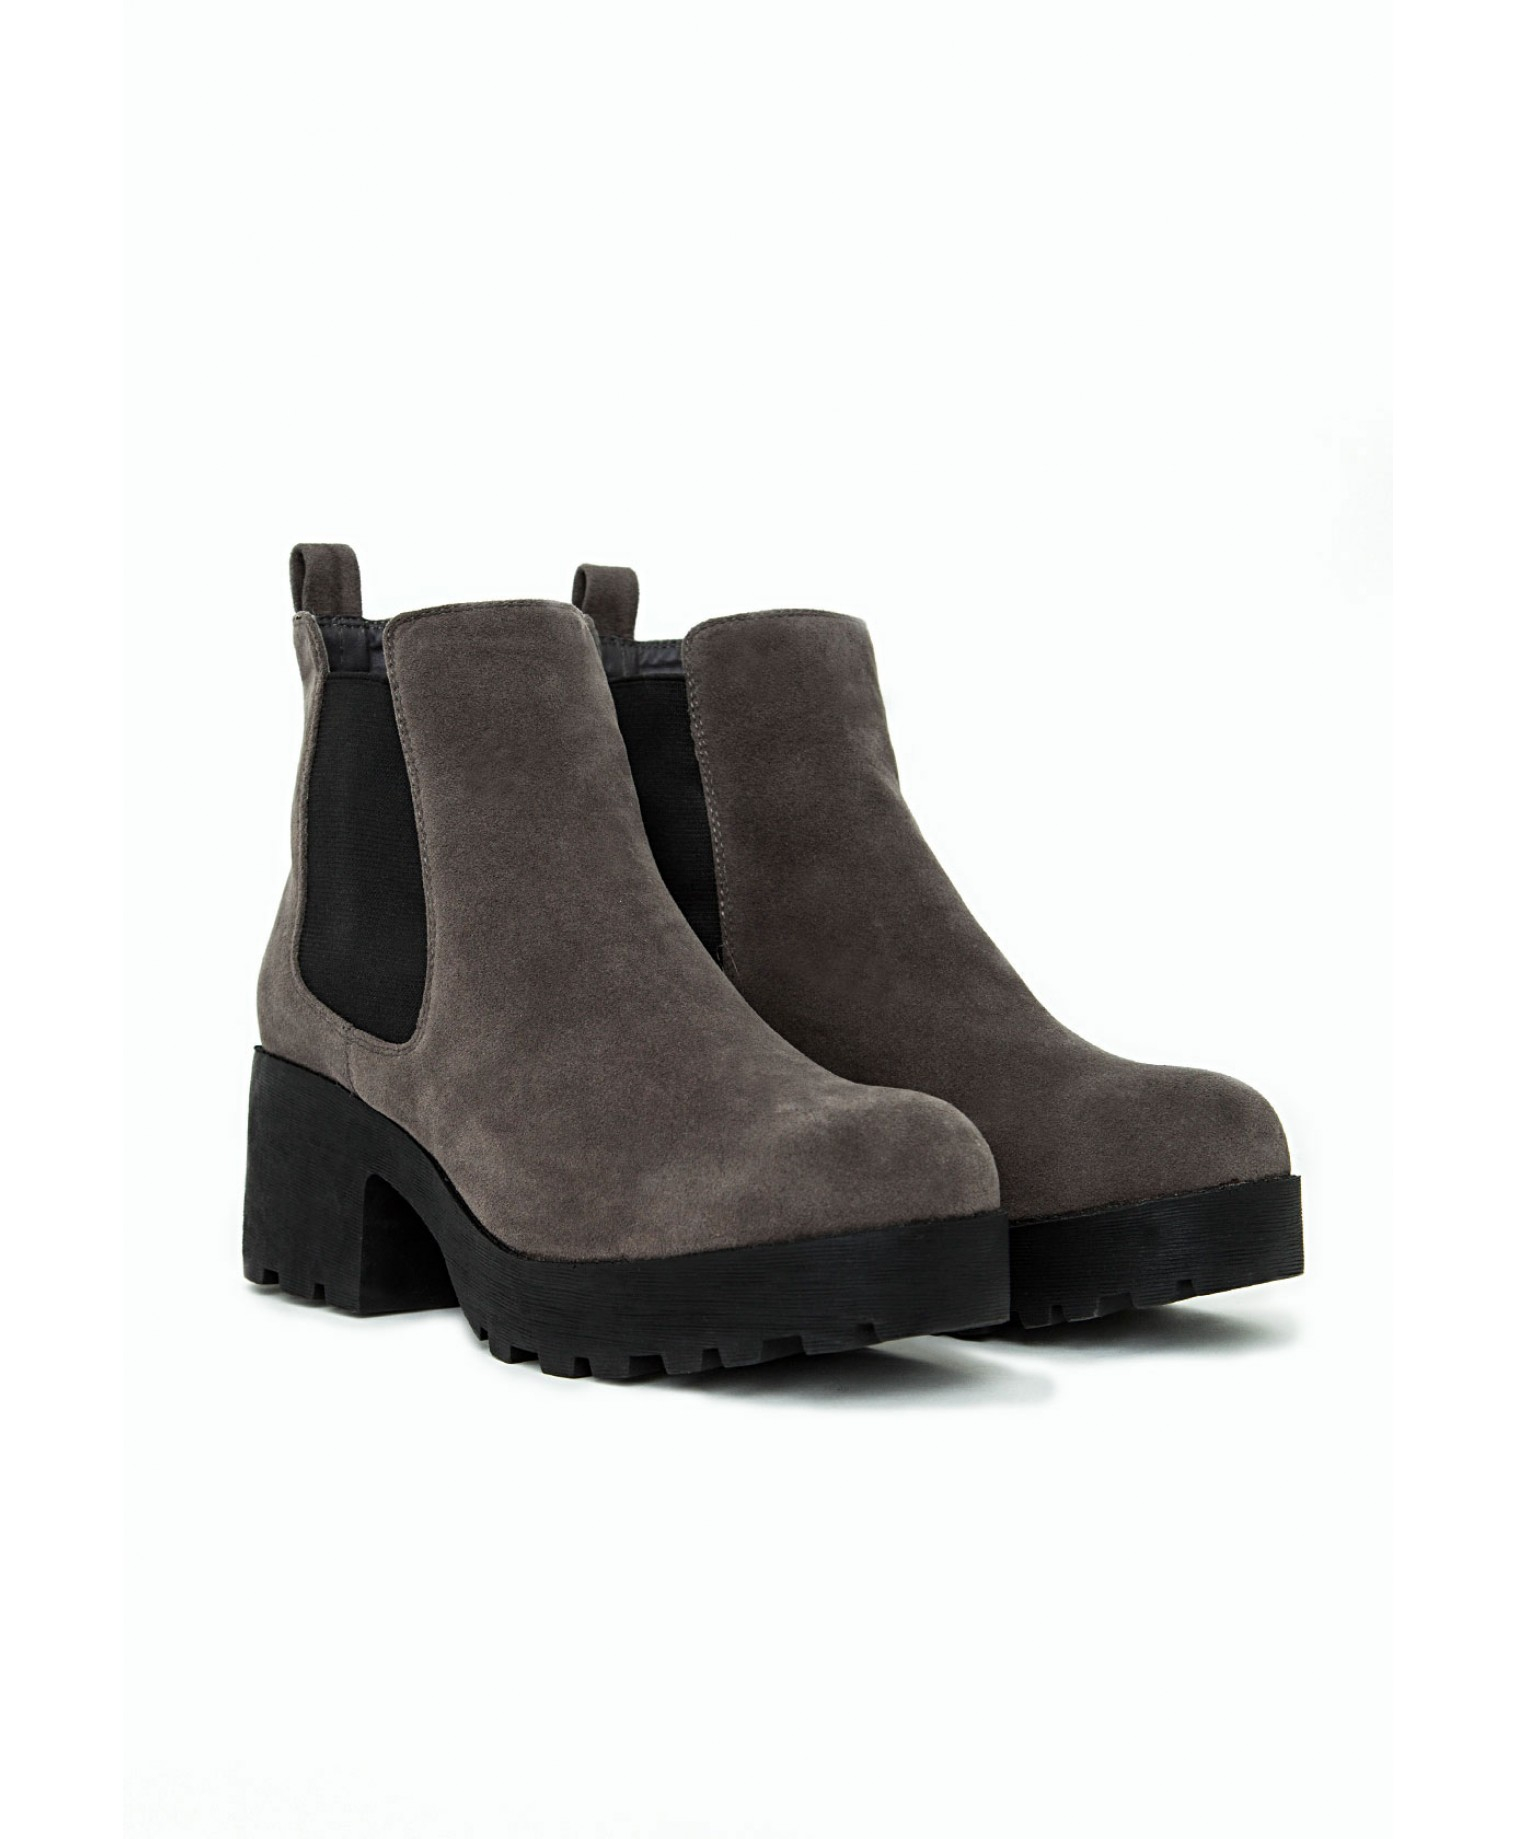 Missguided Lana Faux Suede Cleated Sole Chelsea Boots Grey in Grey